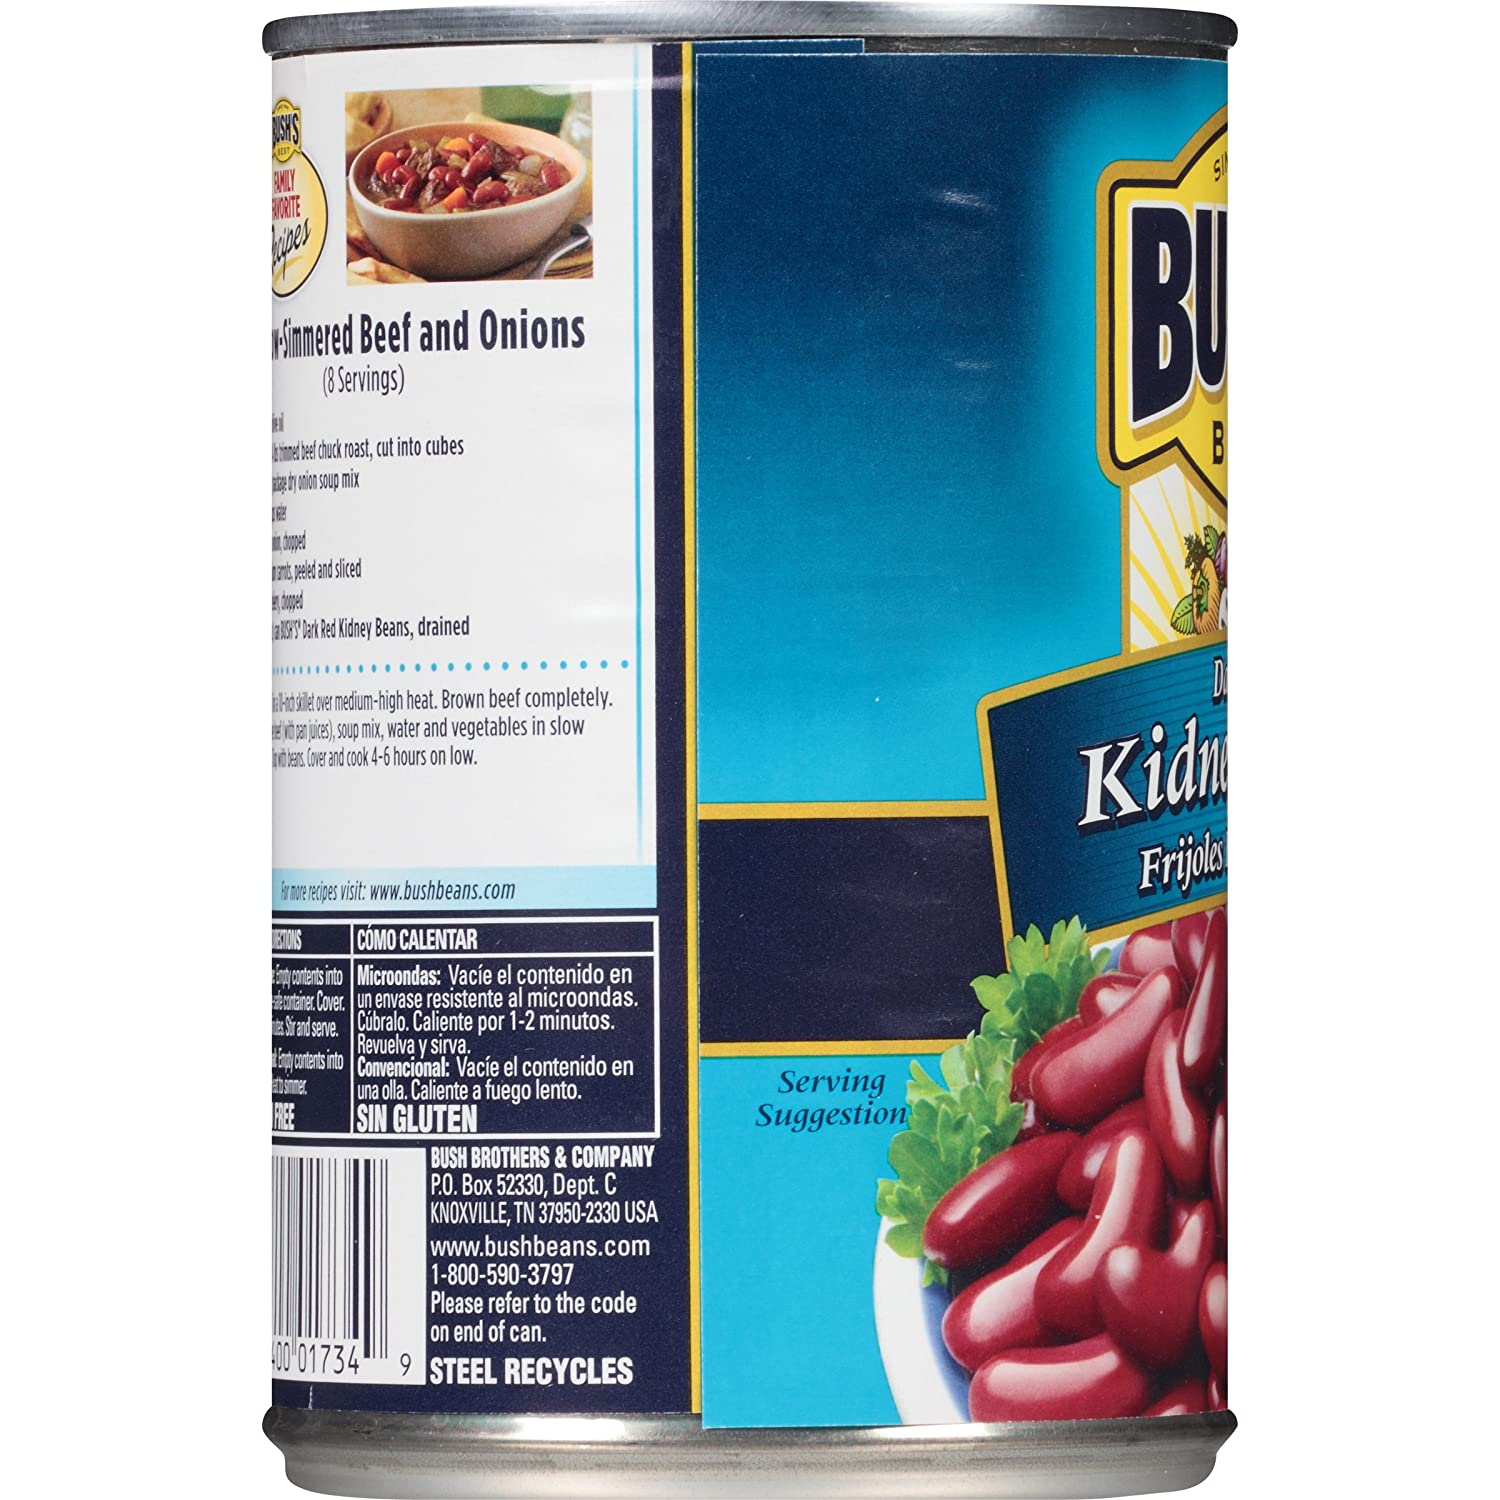 Bushs Best Dark Red Kidney Beans, 16 oz (12 cans)